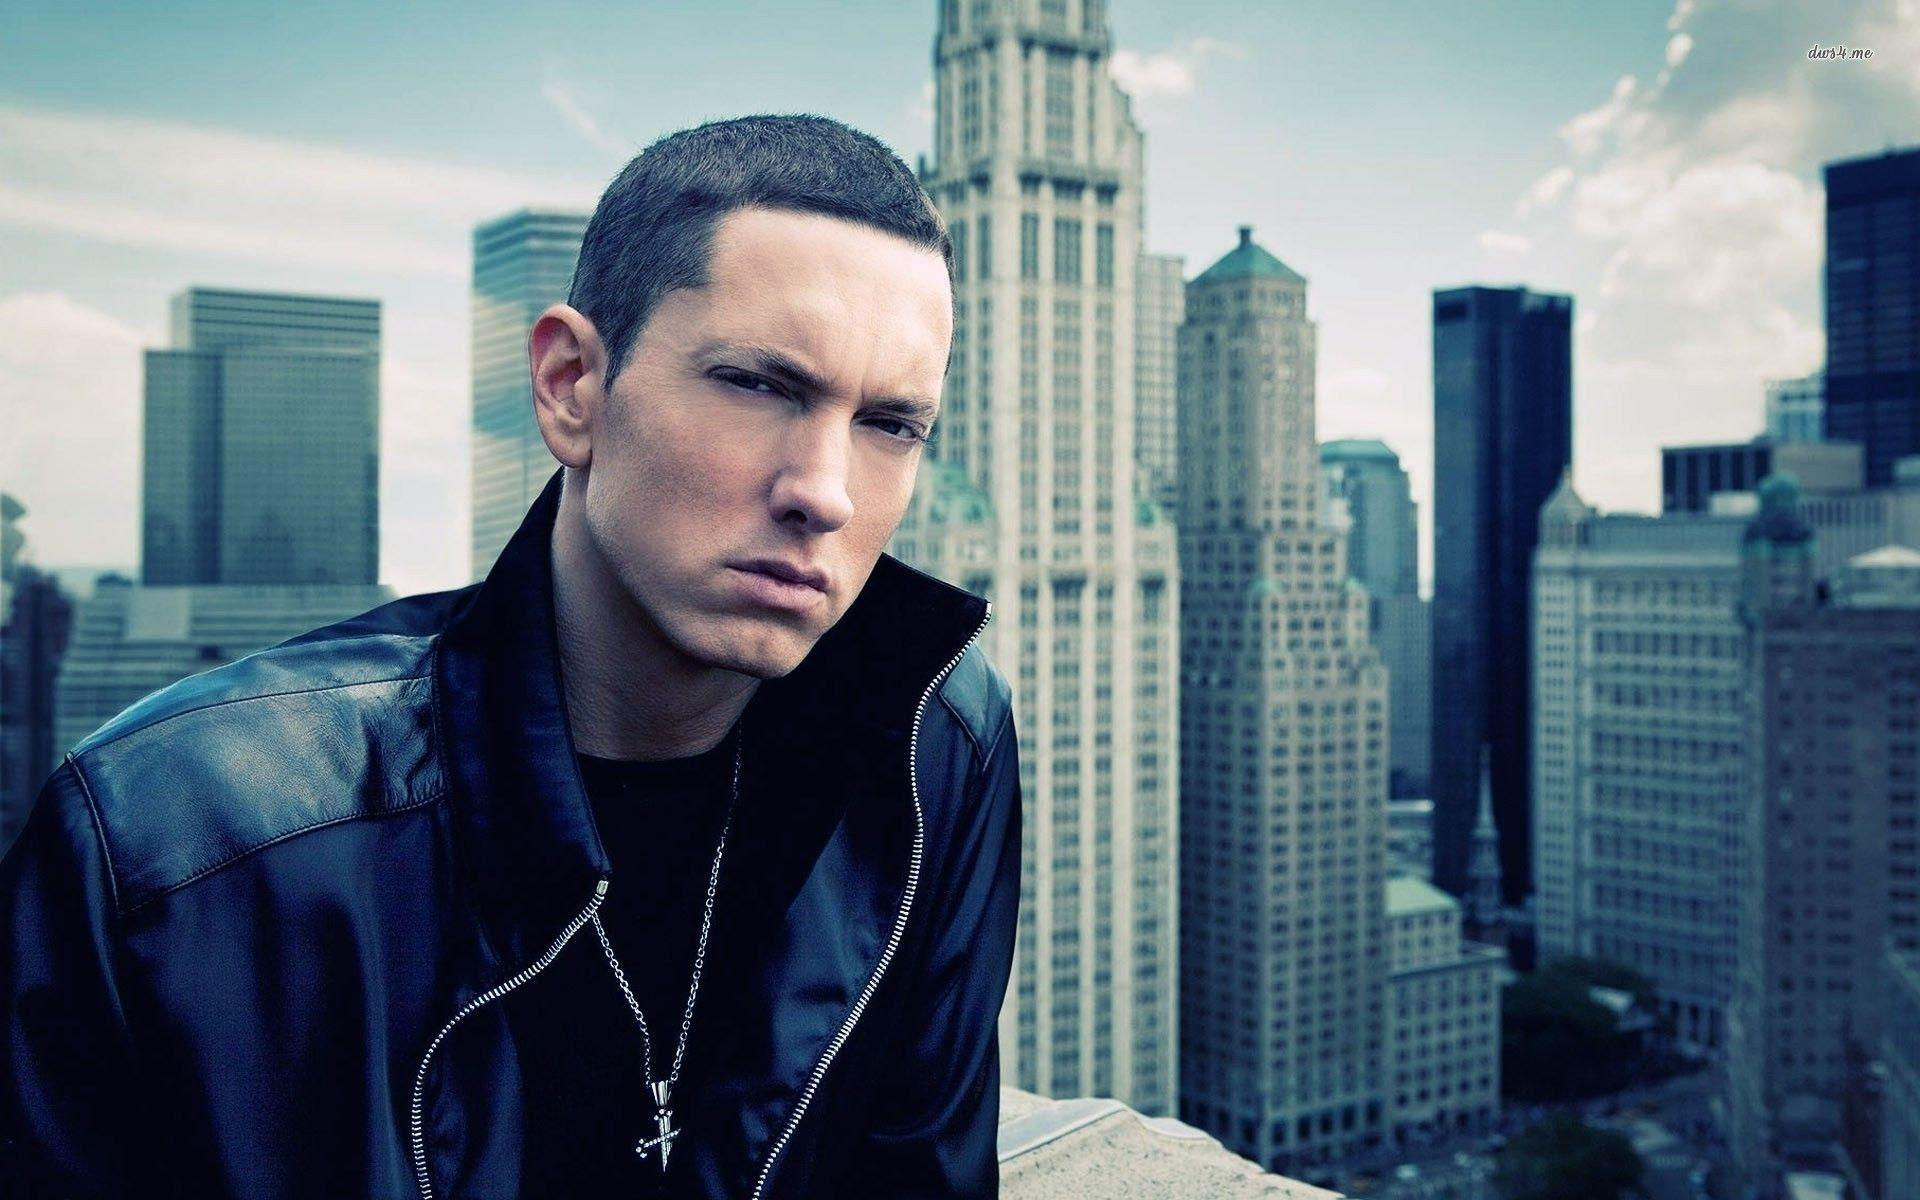 Eminem Wallpaper HD 2018 69 Images